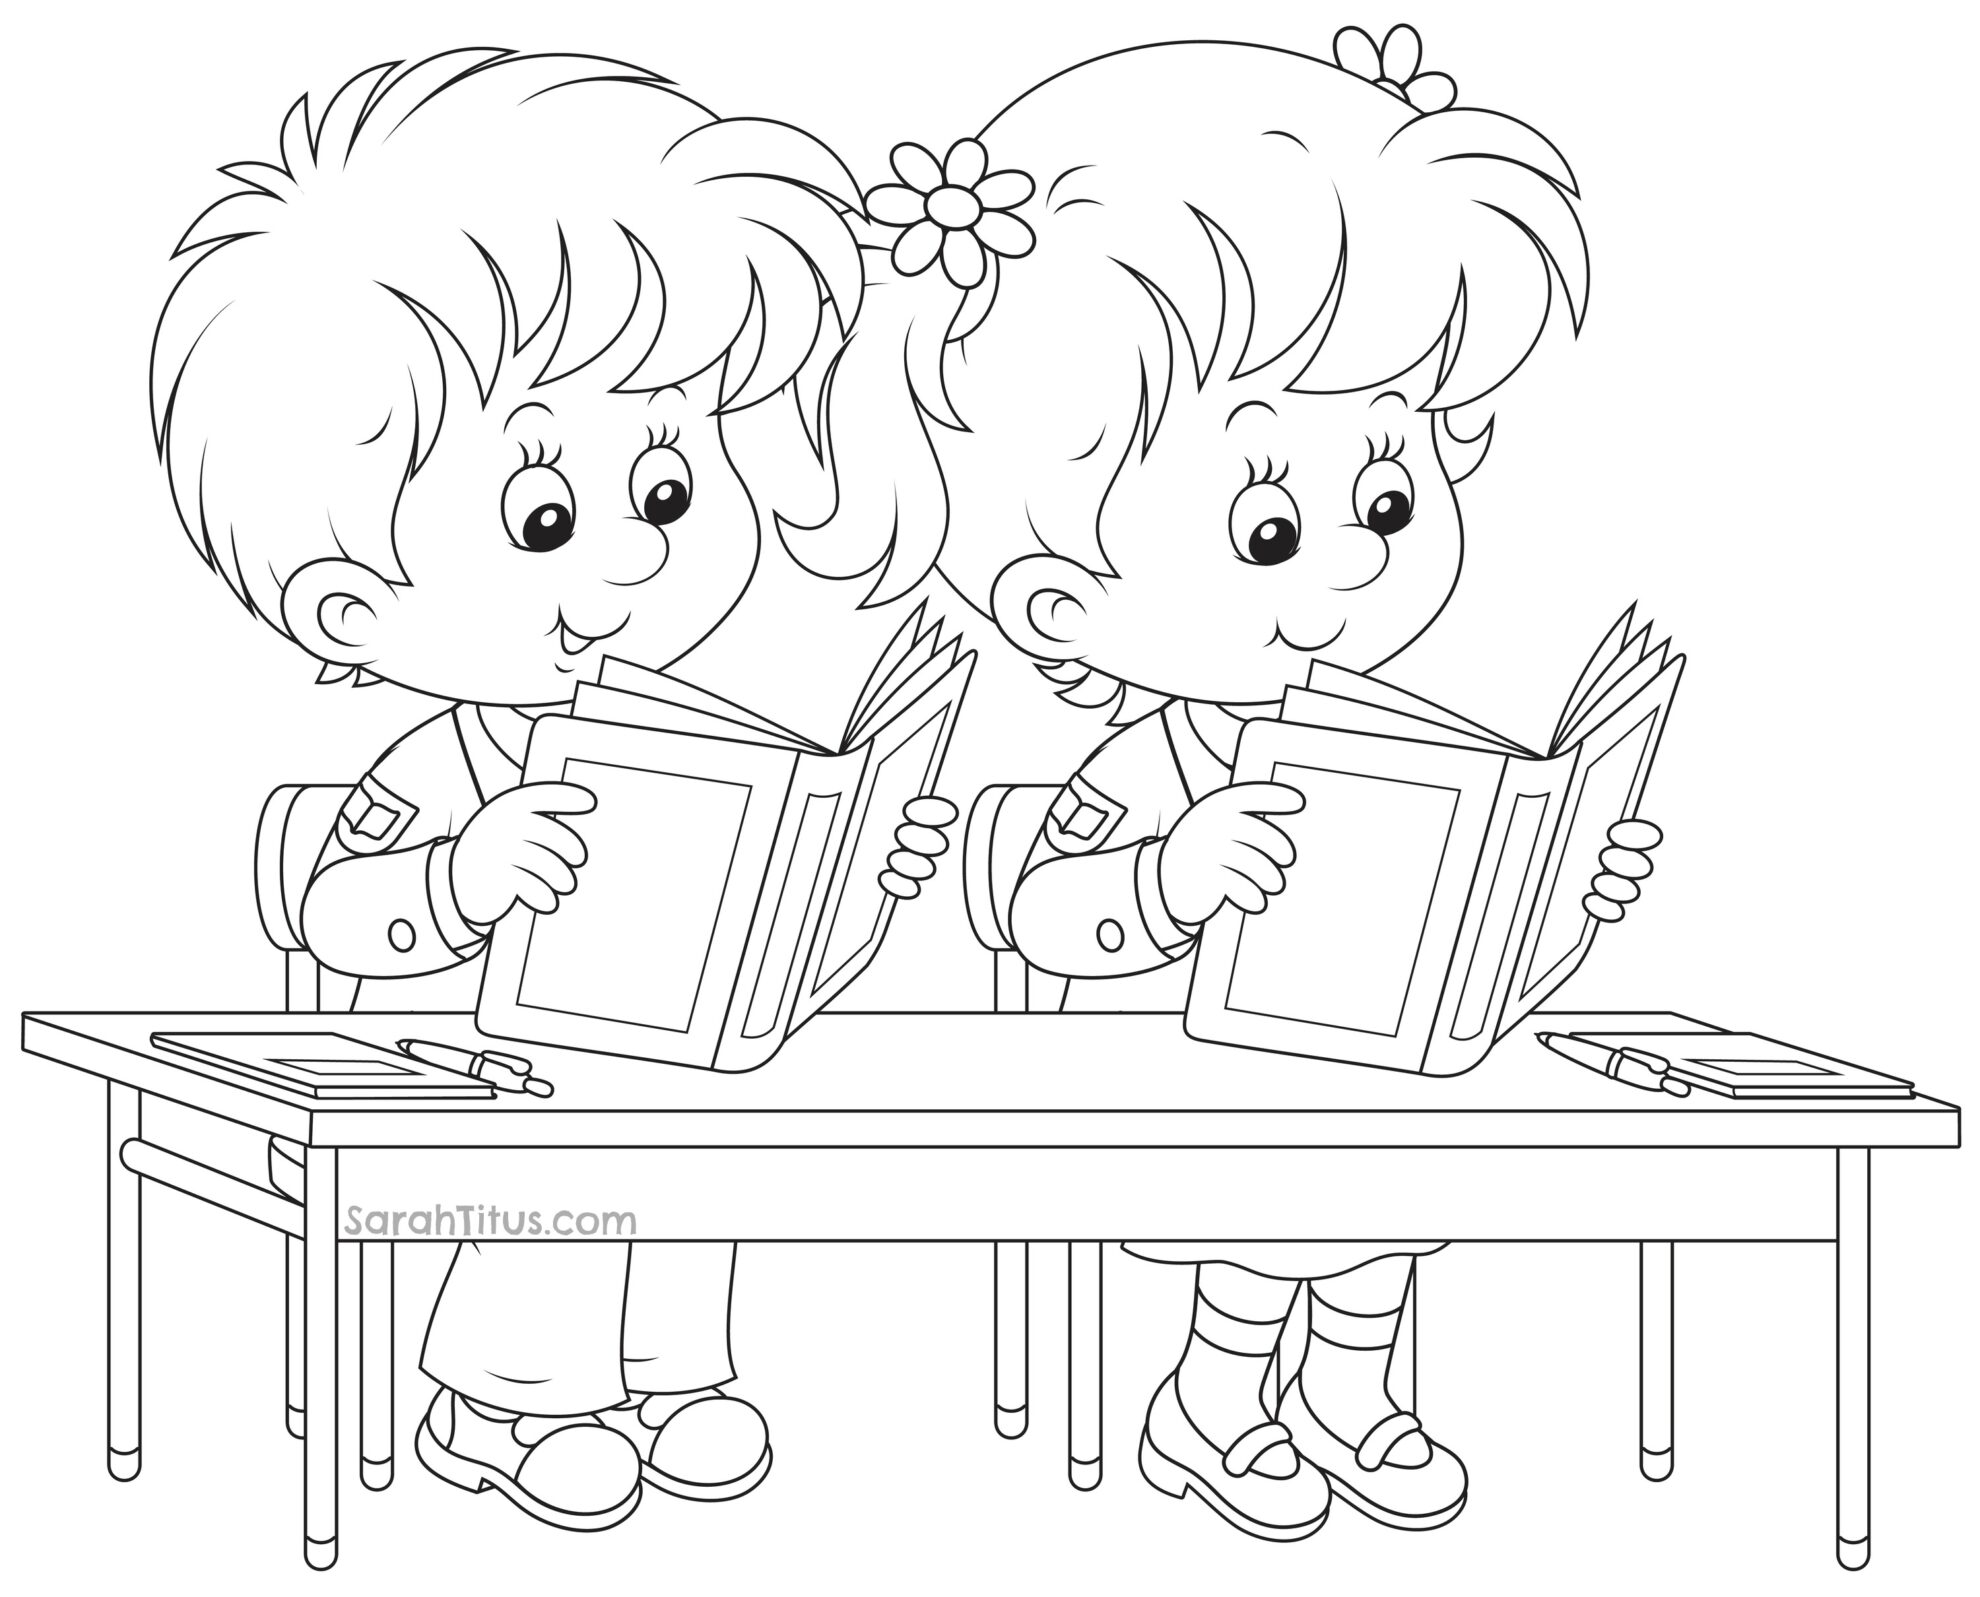 school clipart coloring back to school coloring pages sarah titus clipart school coloring